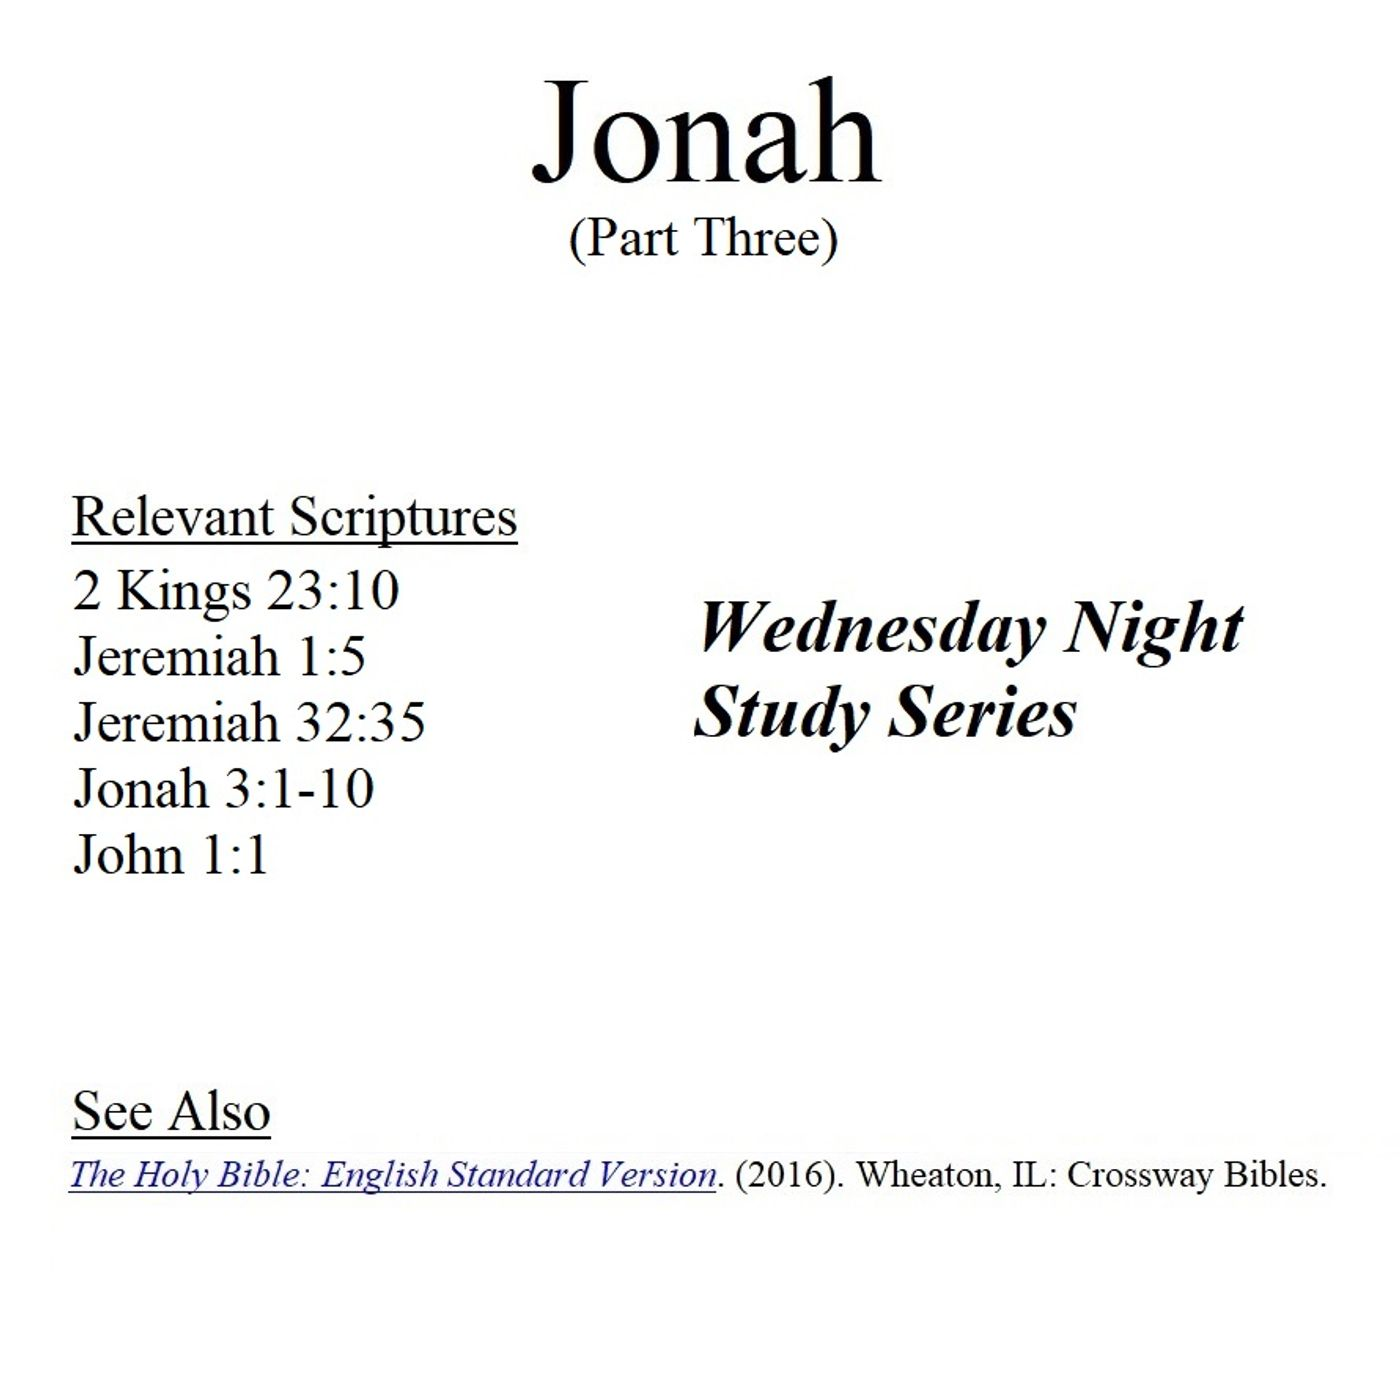 Wednesday Night Study Series - Jonah Part 3 - Repentance, Trinity, Abortion, Universalism